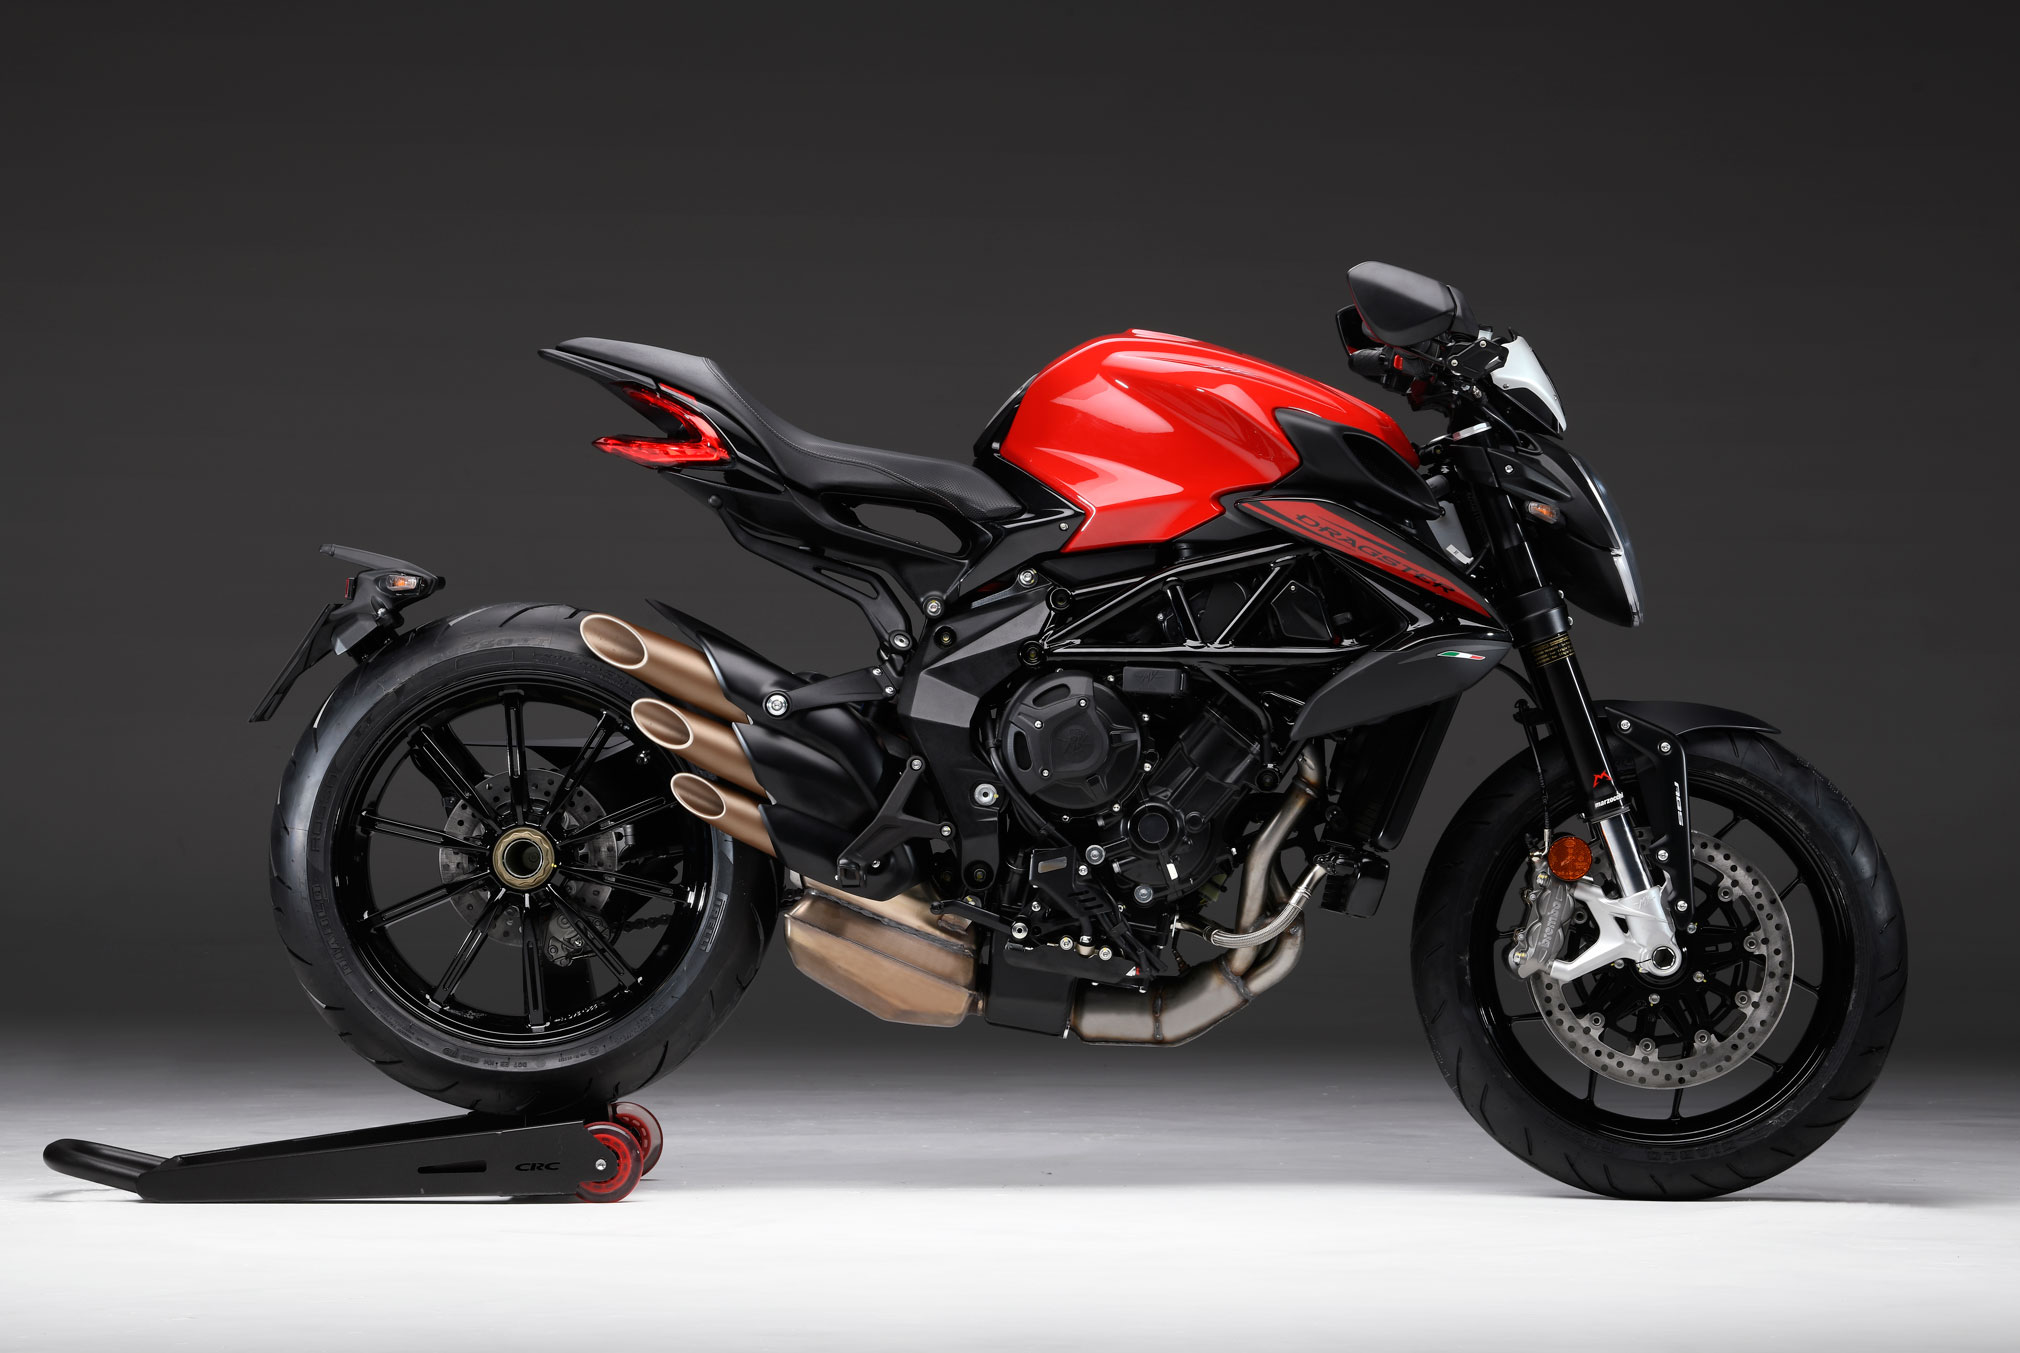 2020 MV Agusta Dragster 800 Rosso Guide • Total Motorcycle